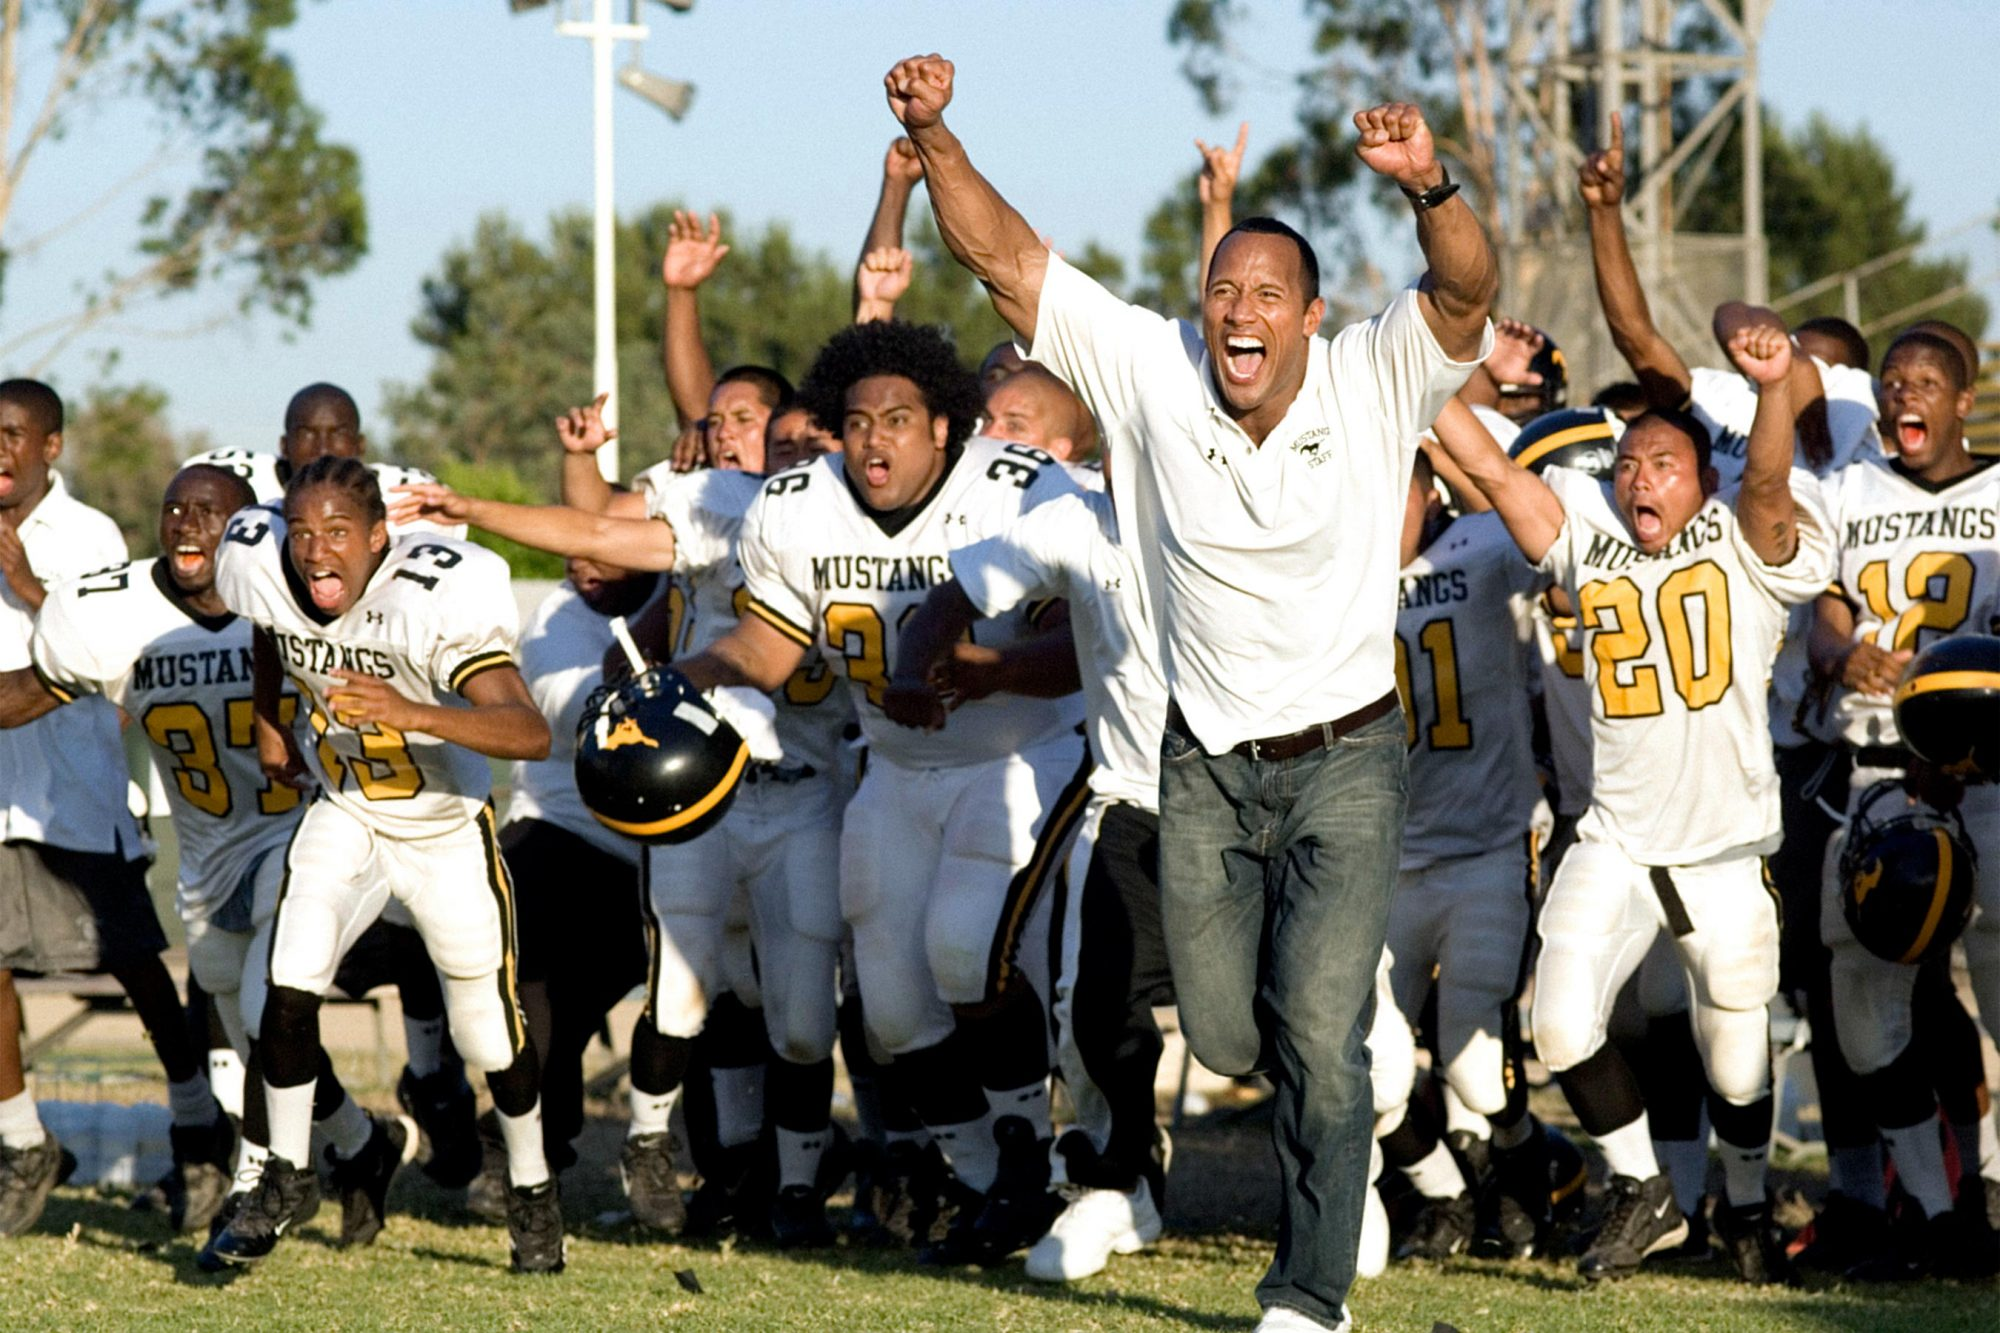 GRIDIRON GANG, Dwayne 'The Rock' Johnson (center right), 2006. ©Columbia Pictures/courtesy Everett C